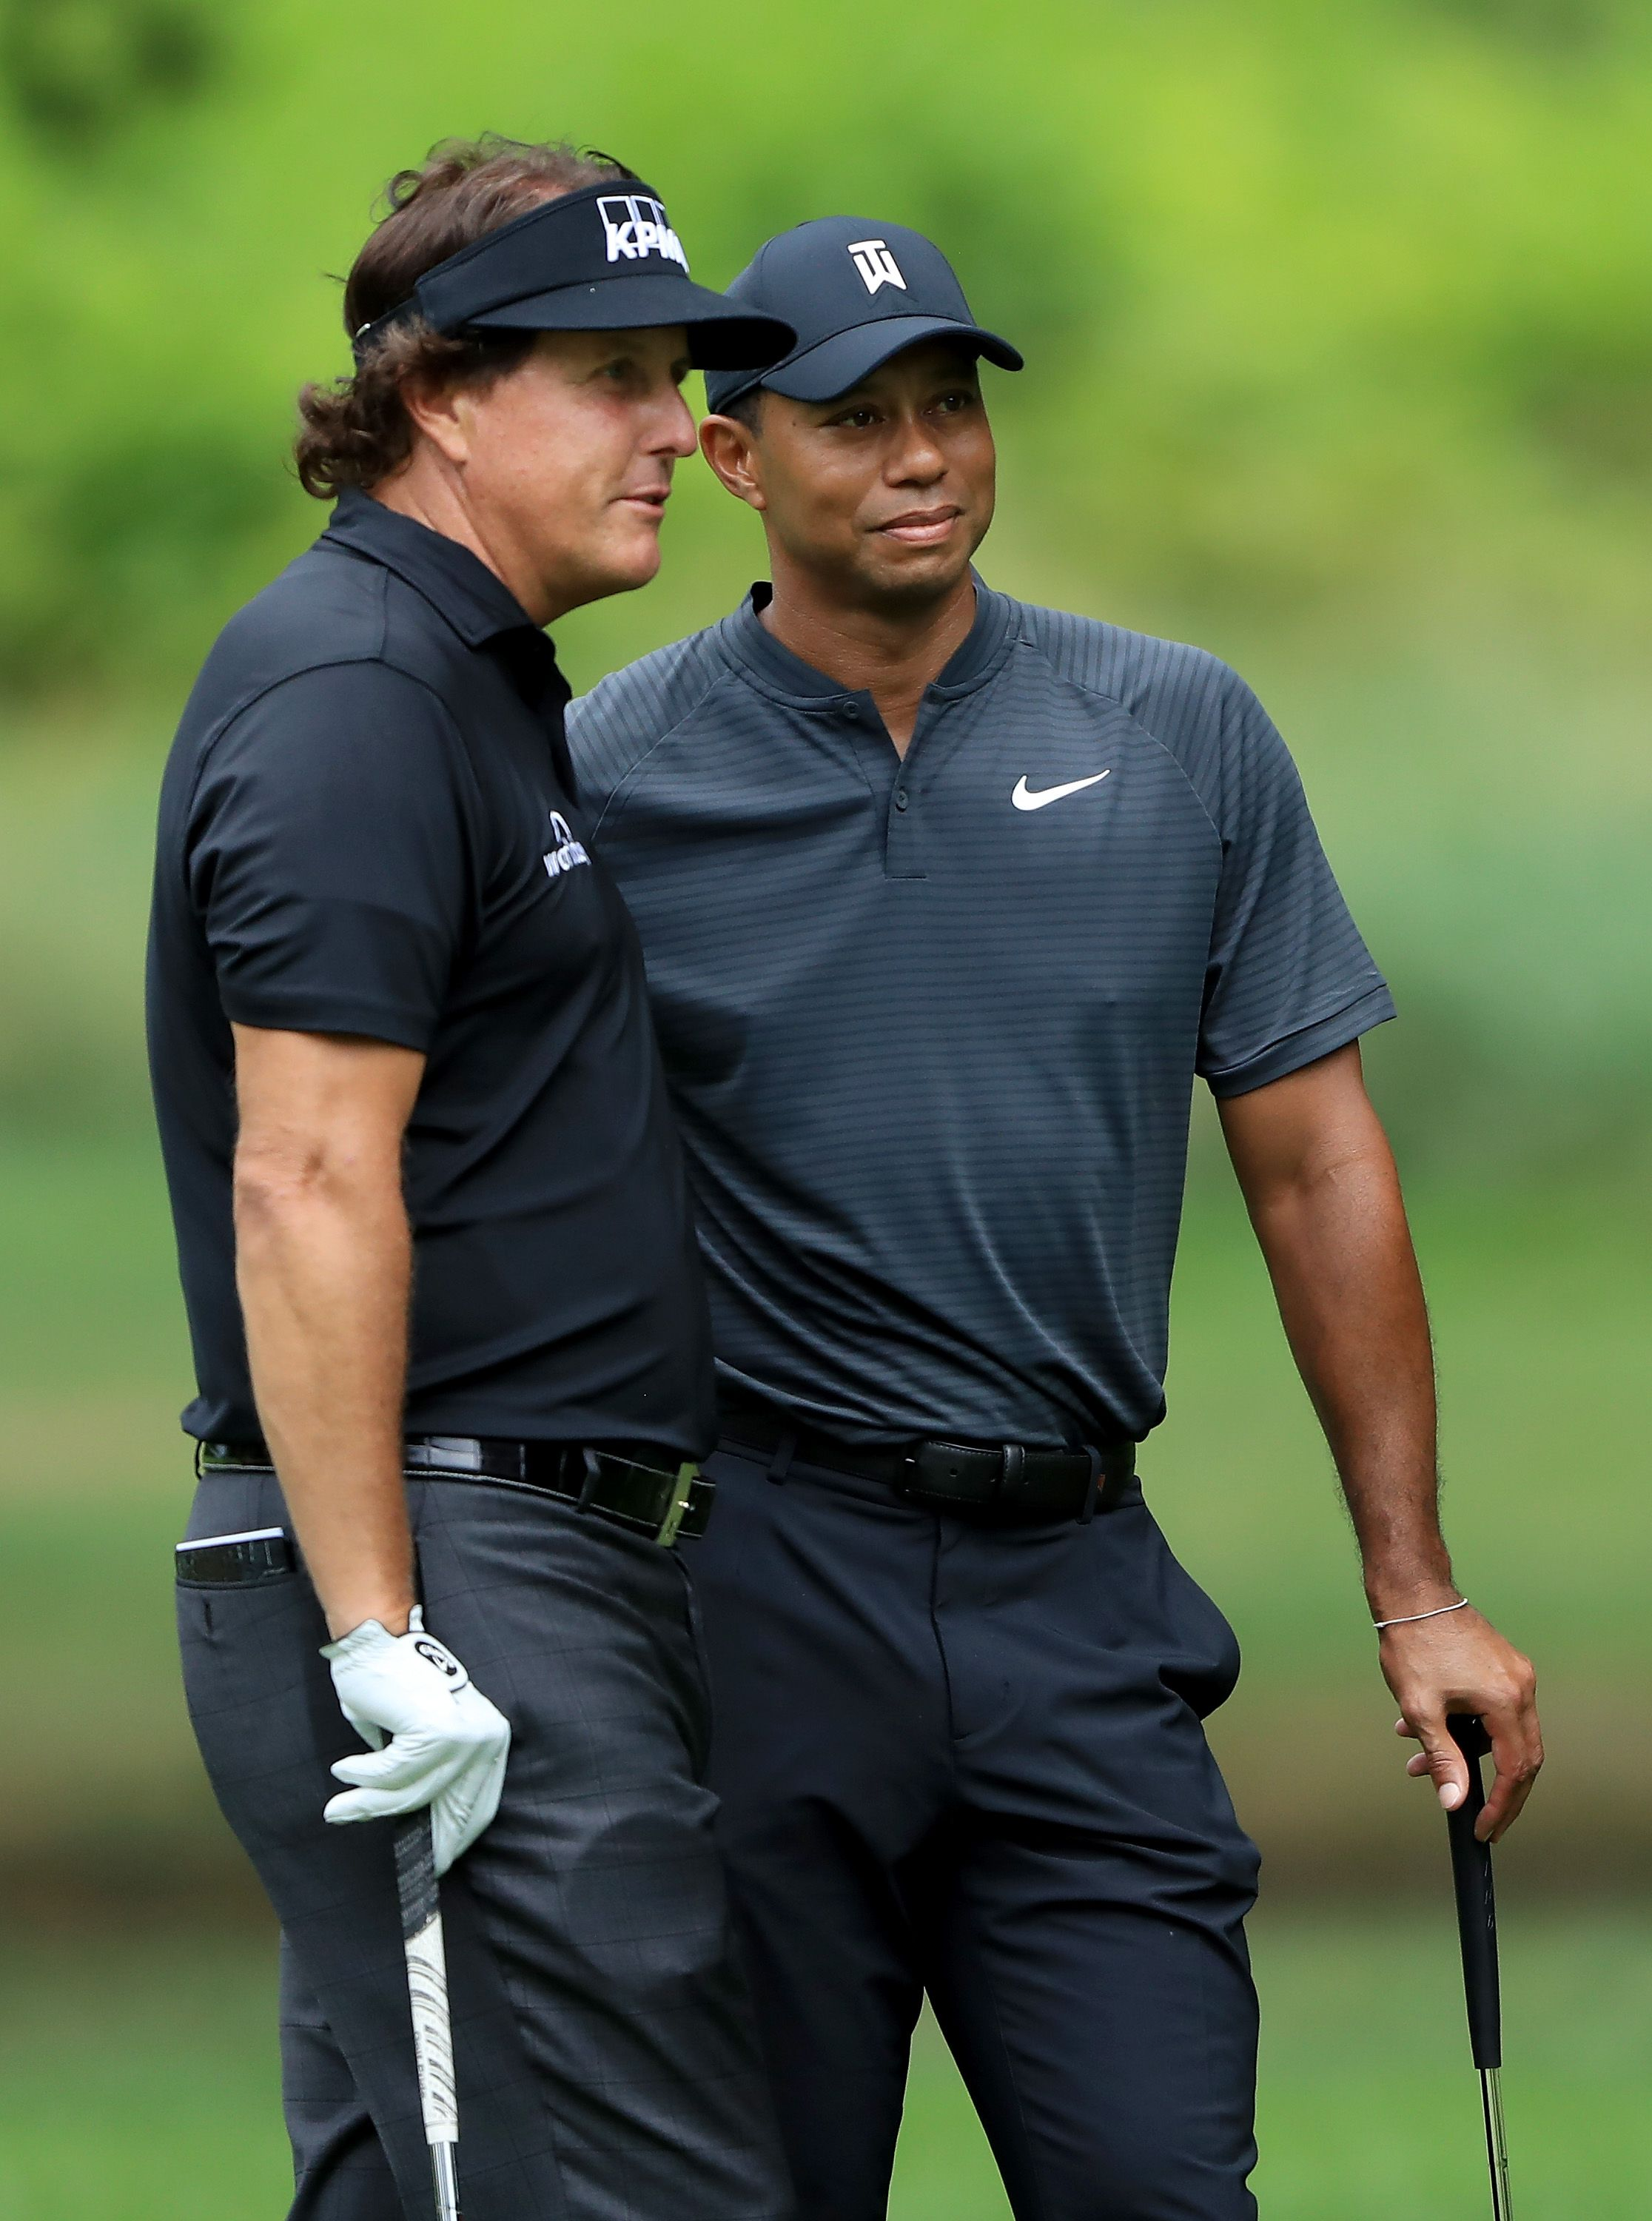 Match between Tiger Woods, Phil Mickelson will take place Thanksgiving weekend